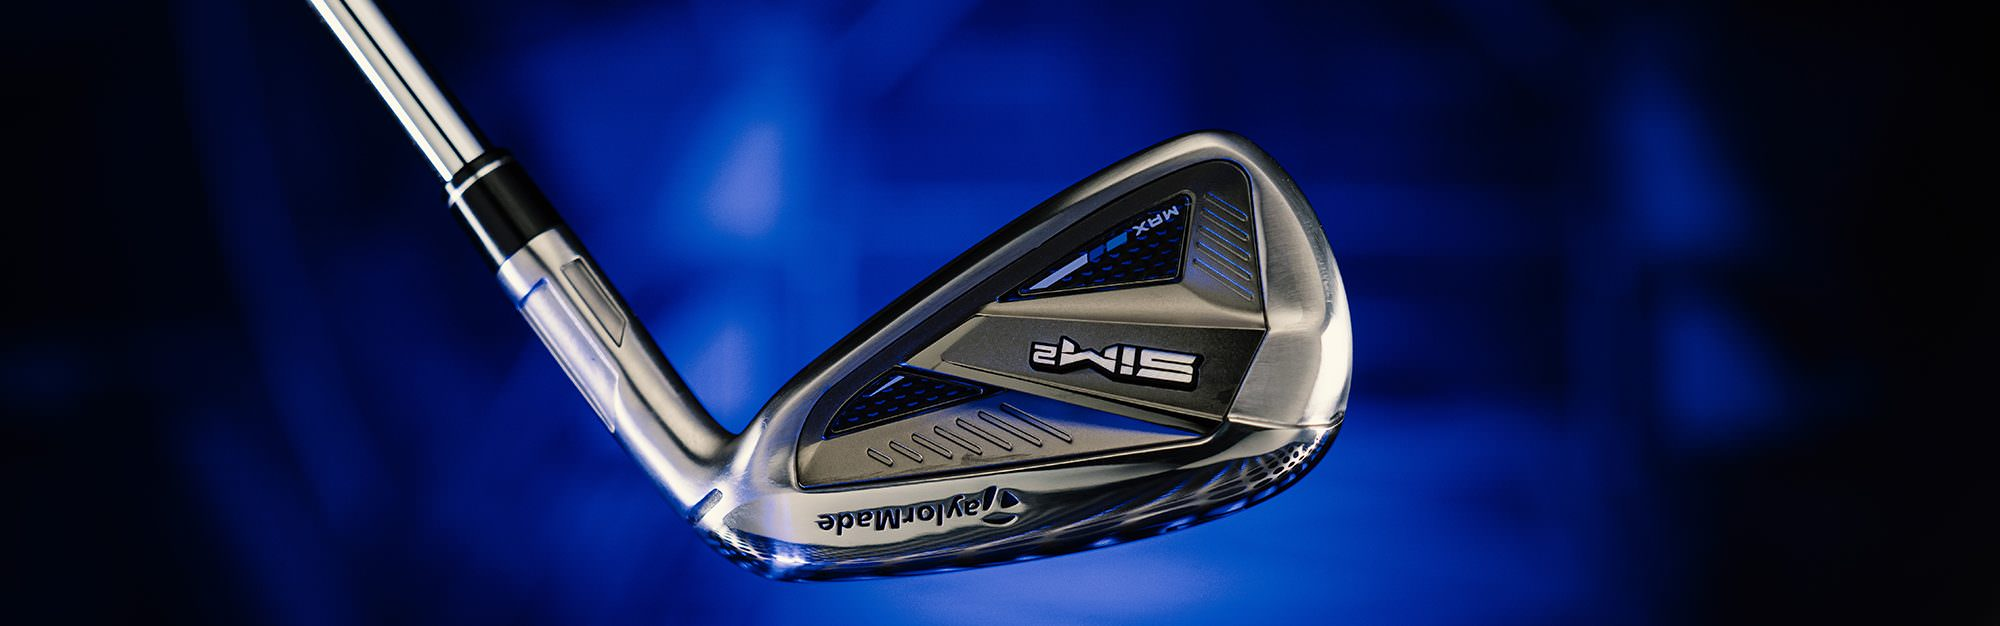 New looks and new models - there's a TaylorMade SIM2 iron for everyone